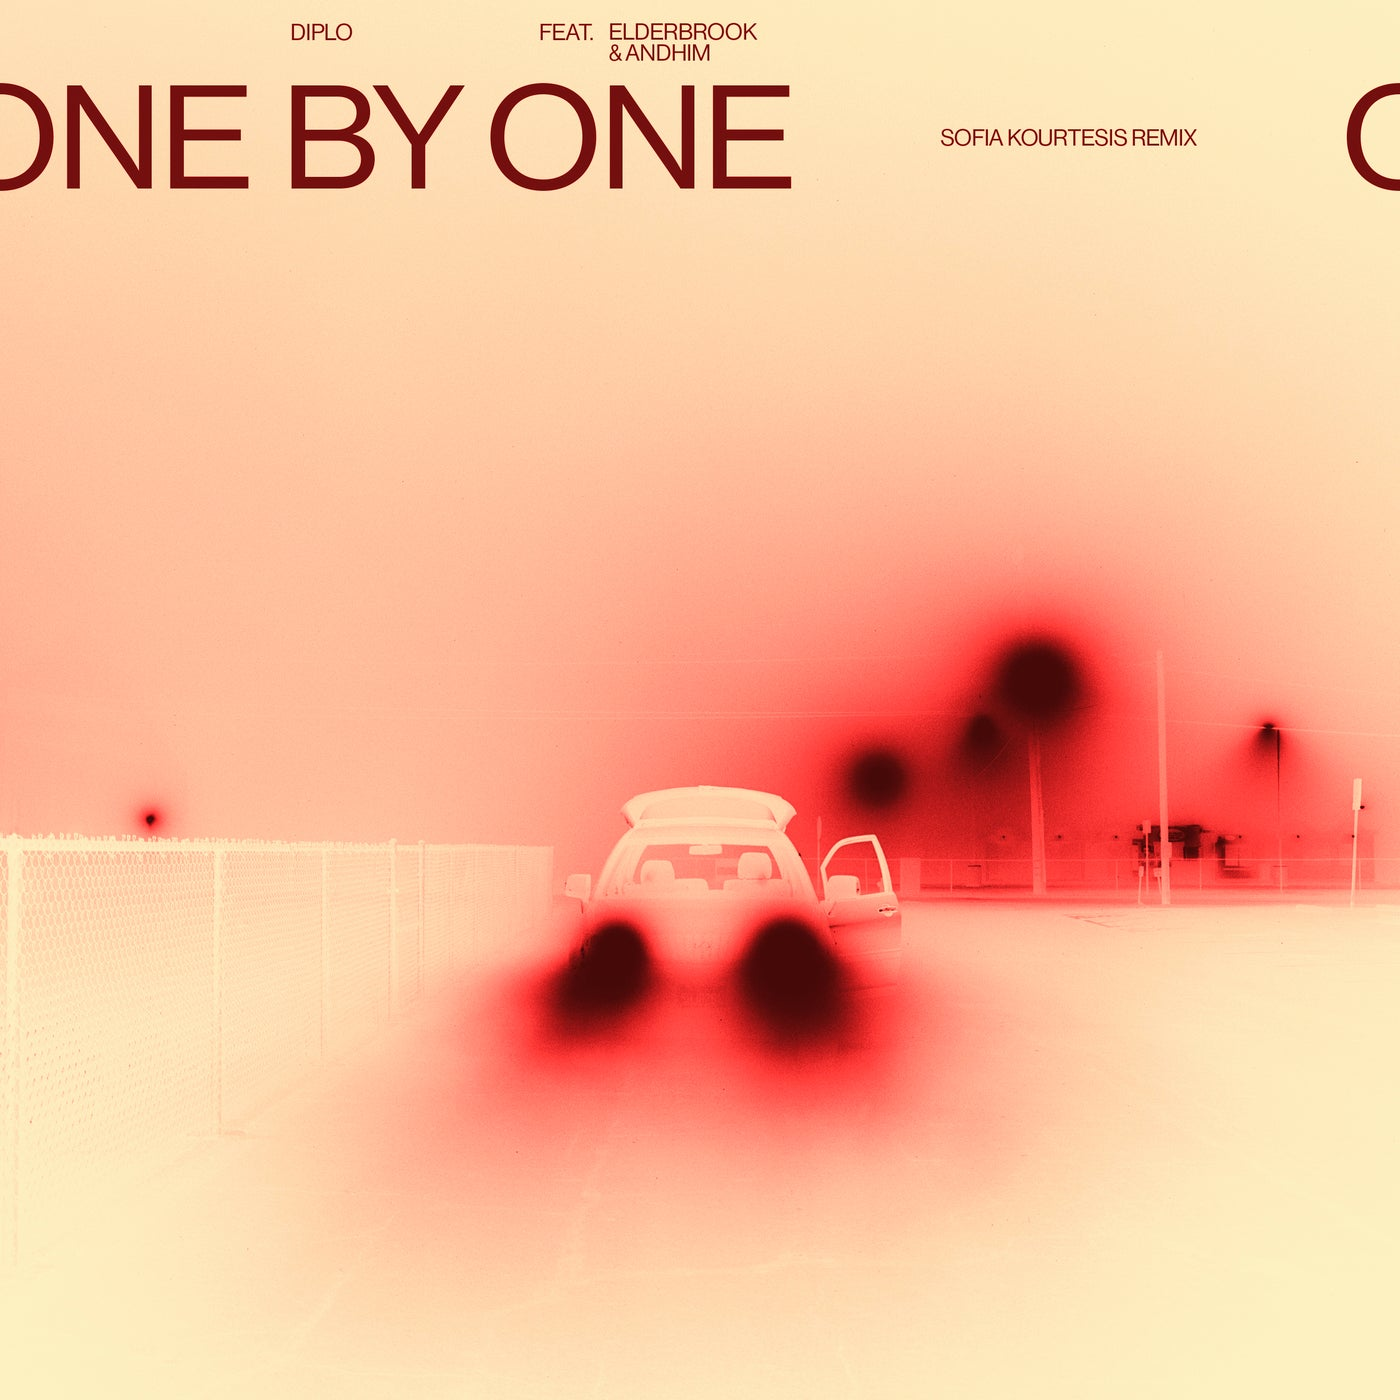 Download One By One (Sofia Kourtesis Remix (Extended) on Electrobuzz